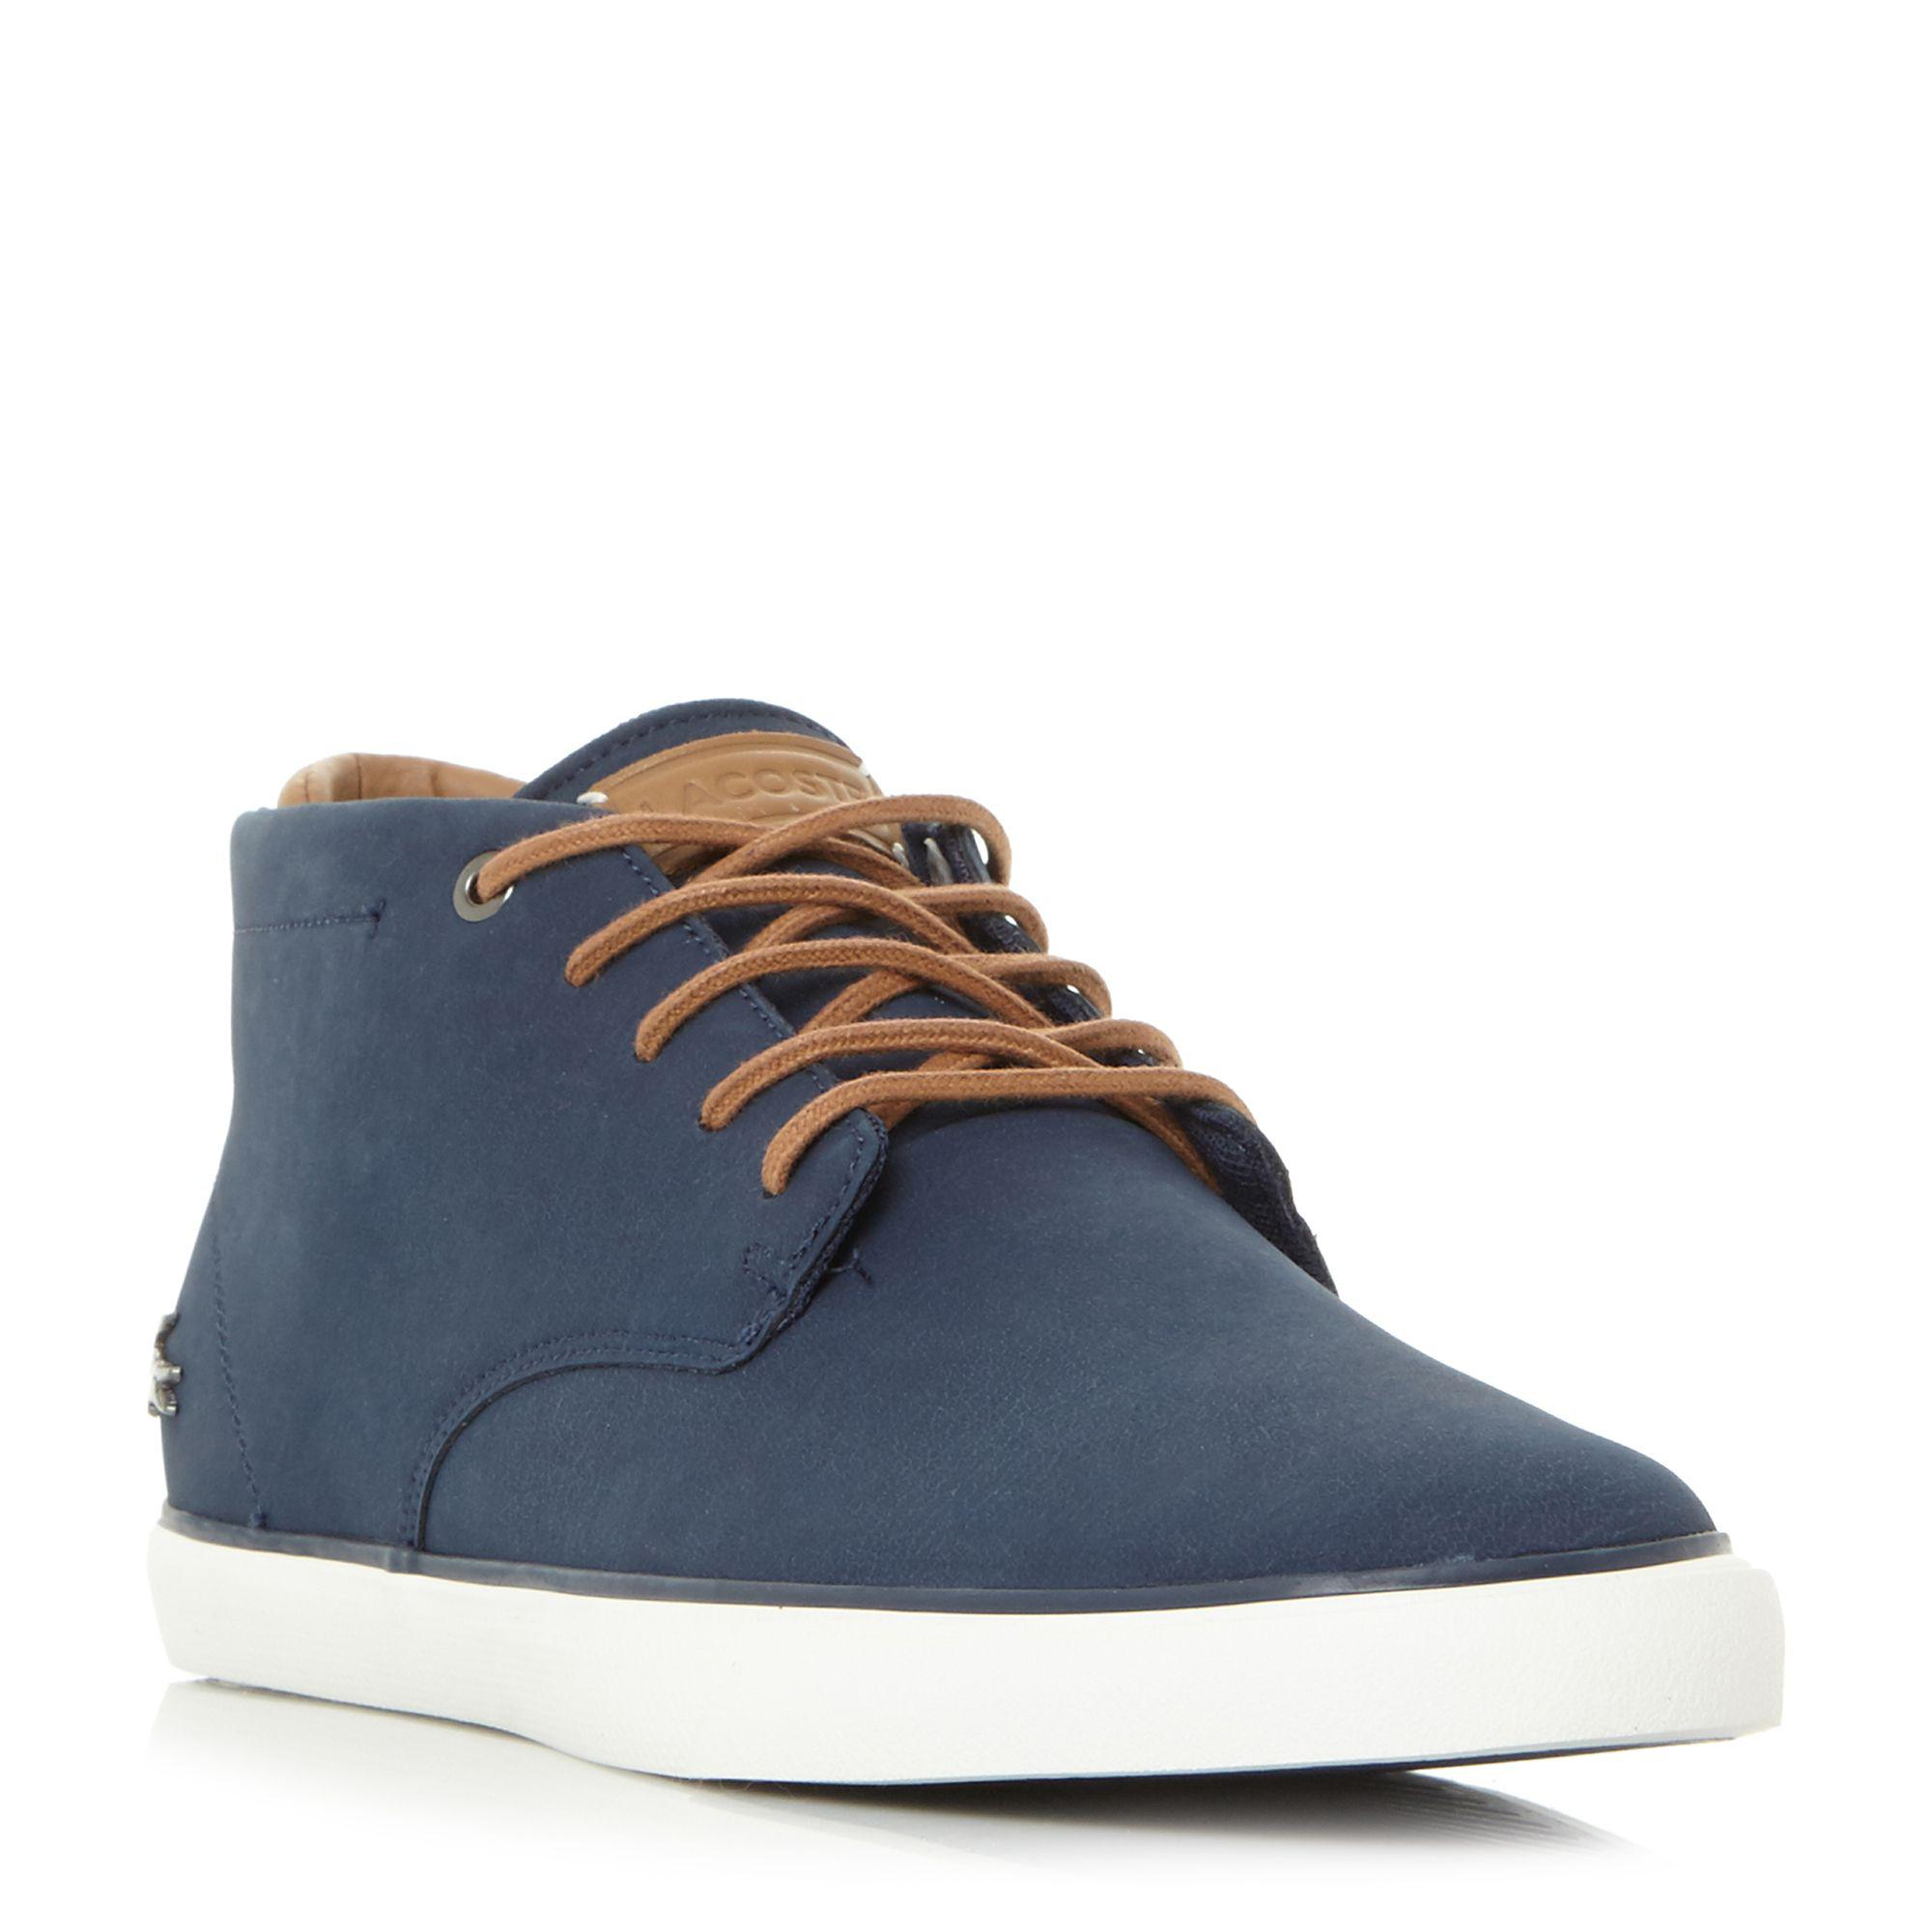 Lacoste Men's Esparre Chukka 318 1 Leather/Suede Derby Chukka Boots - / - UK 10 RCafO9EdD